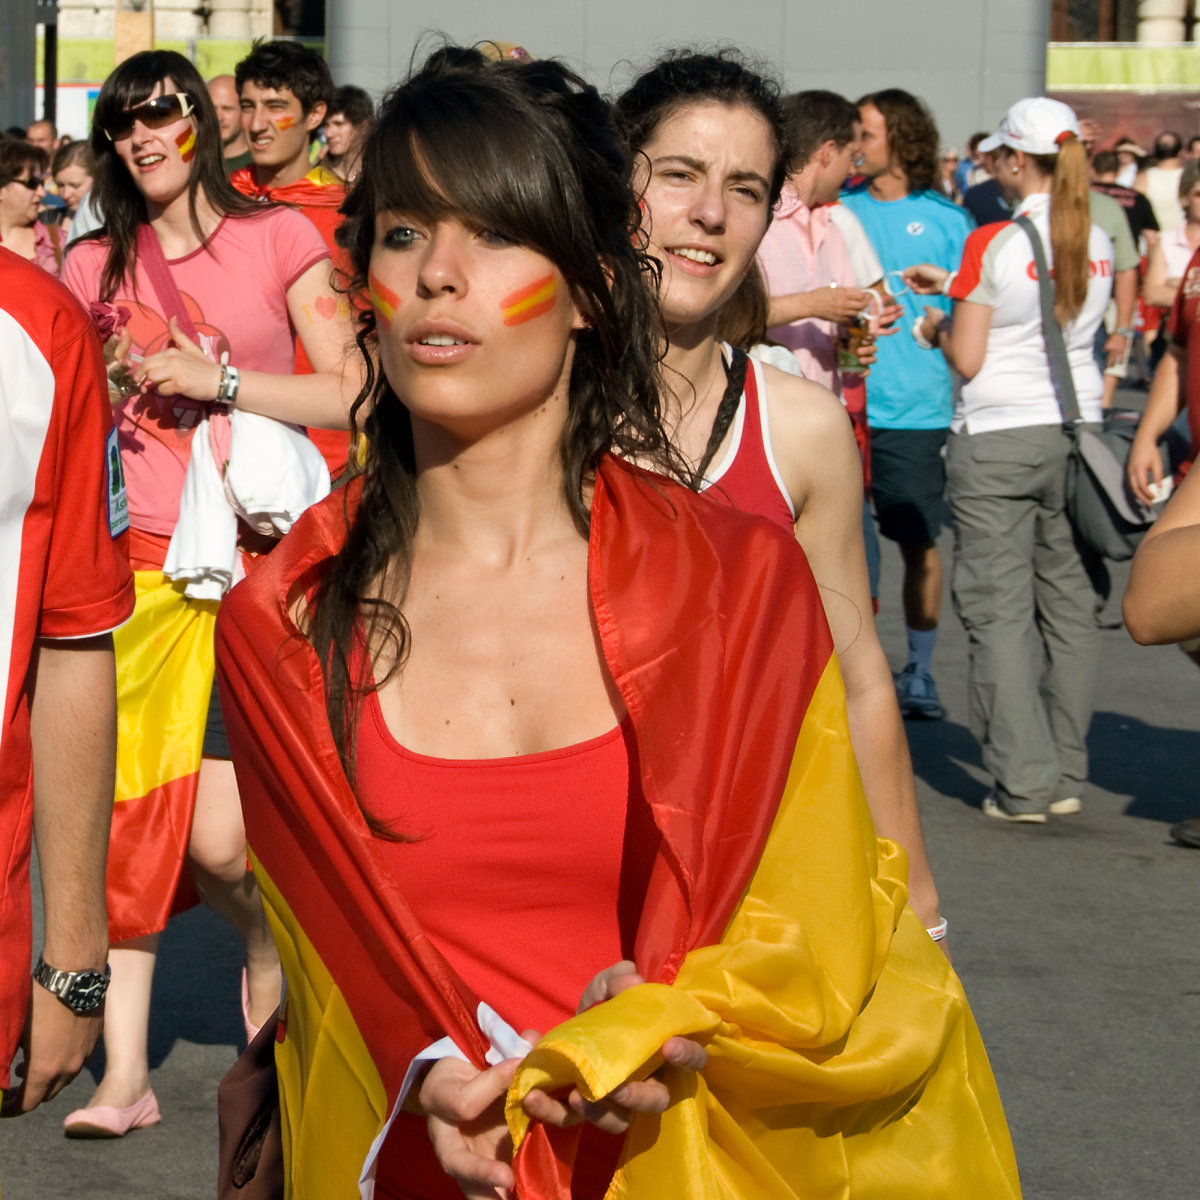 girls of spain